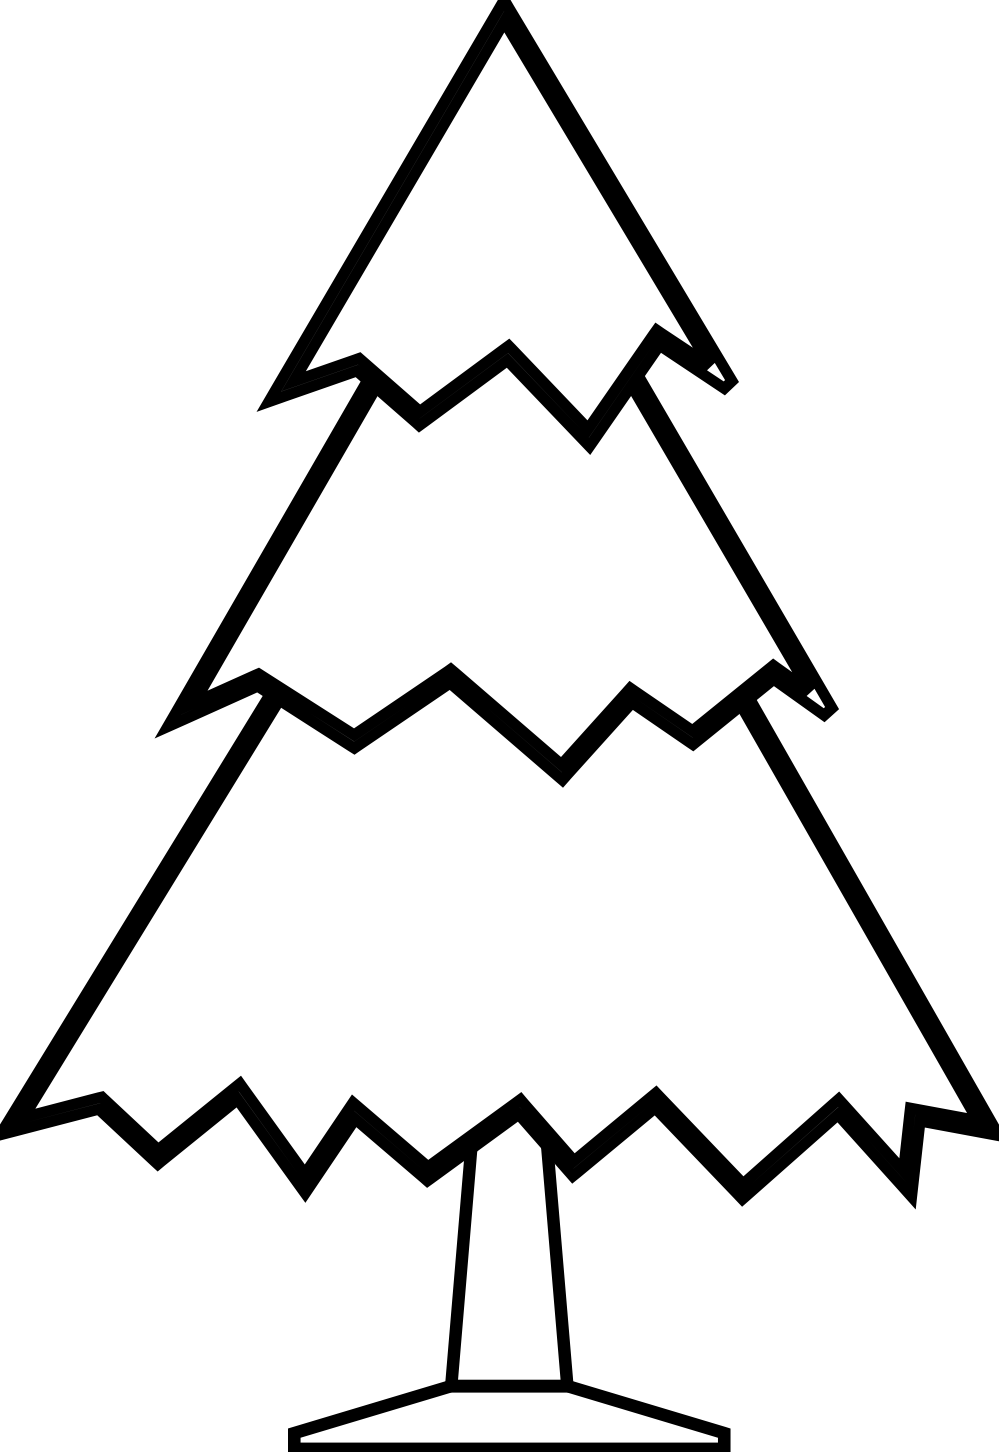 Christmas Clip Art Black And White - Cliparts.co